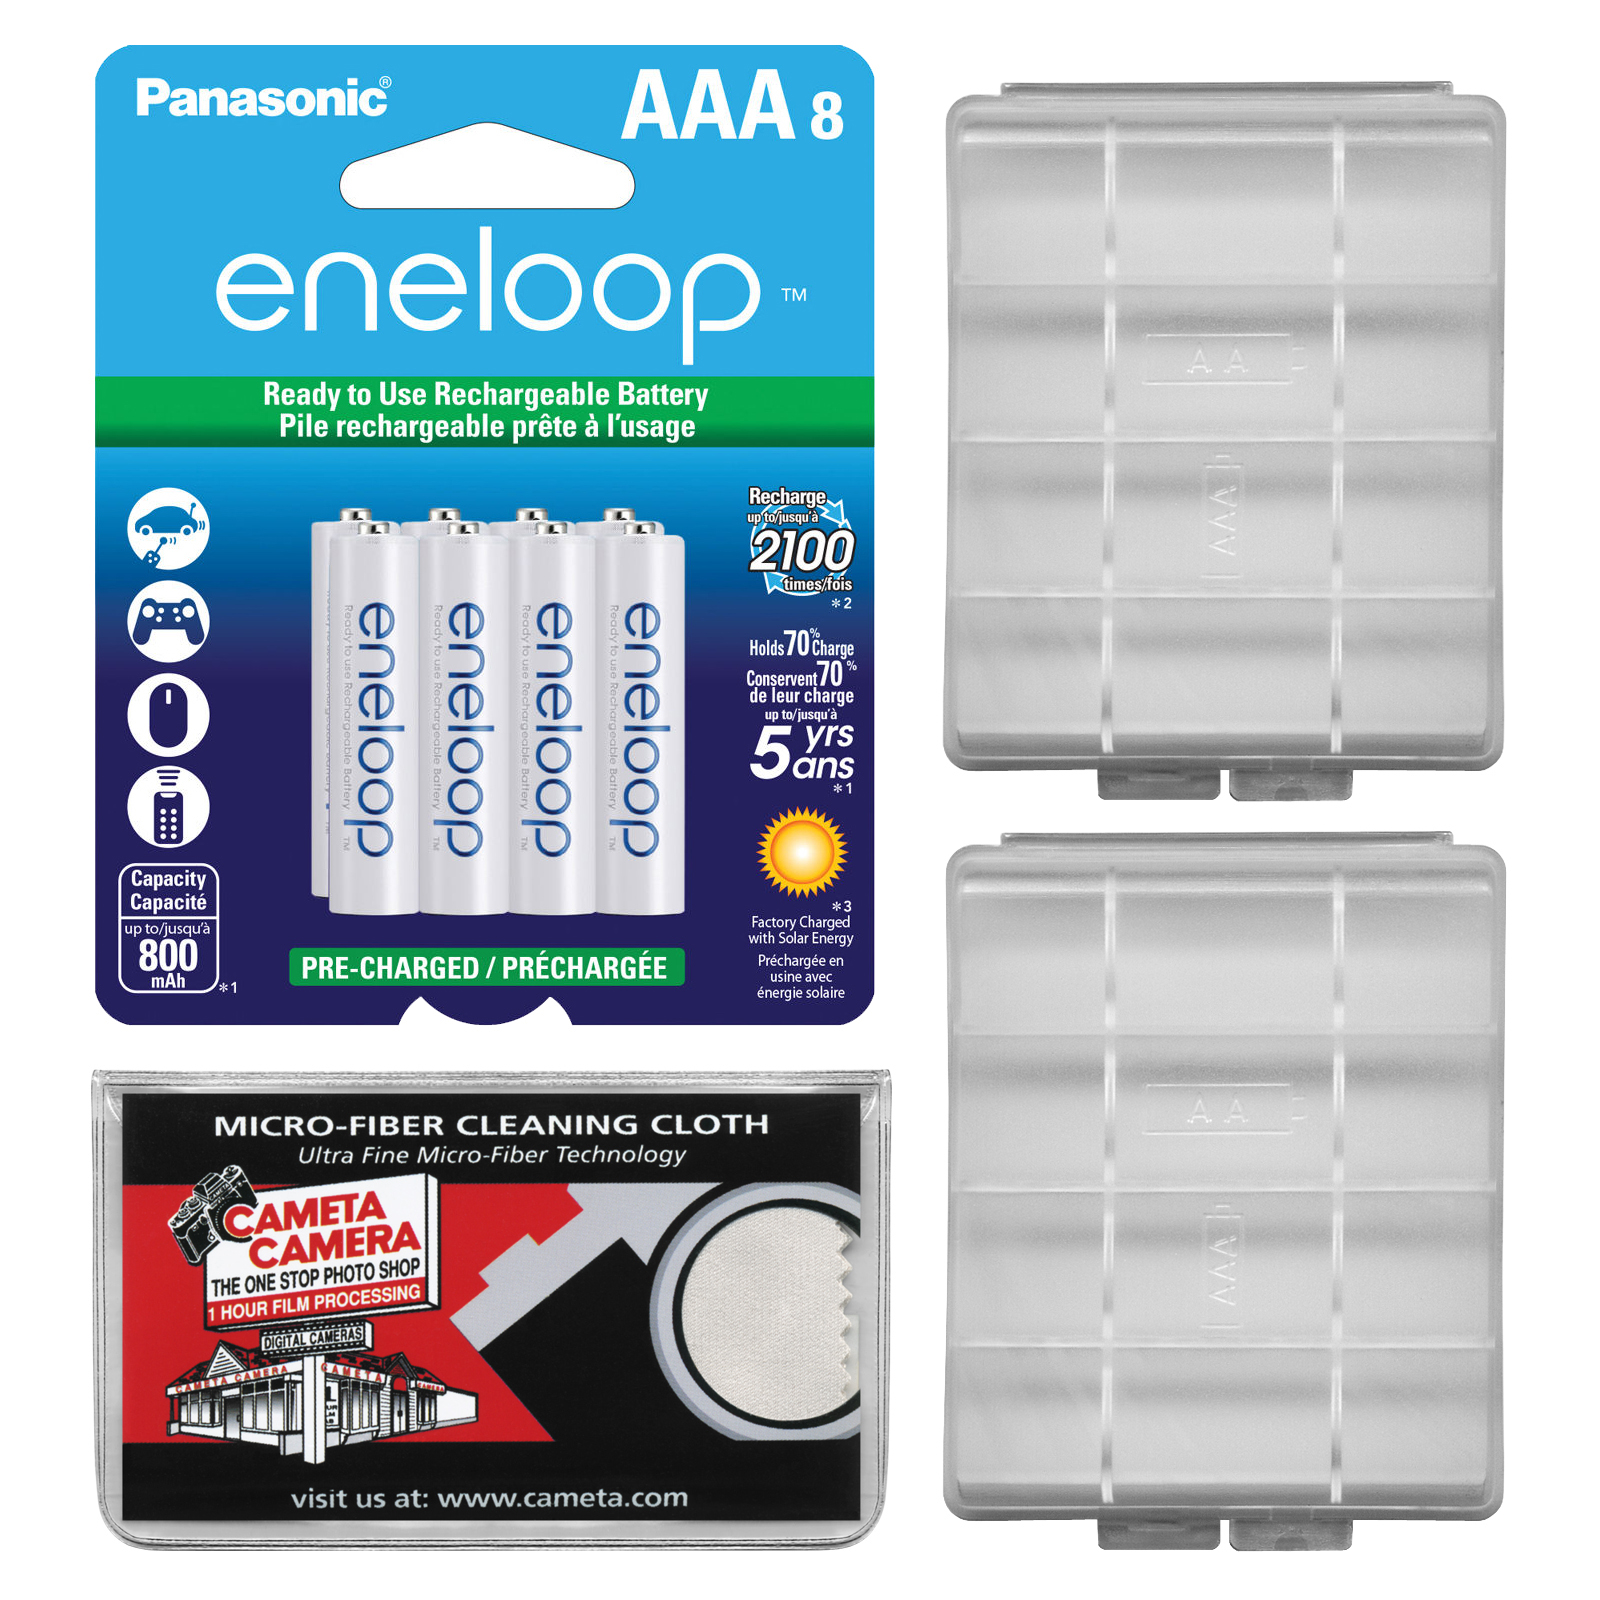 Panasonic eneloop (8) AAA 800mAh Pre-Charged NiMH Rechargeable Batteries with (2) AAA Battery Cases + Microfiber Cleaning Cloth